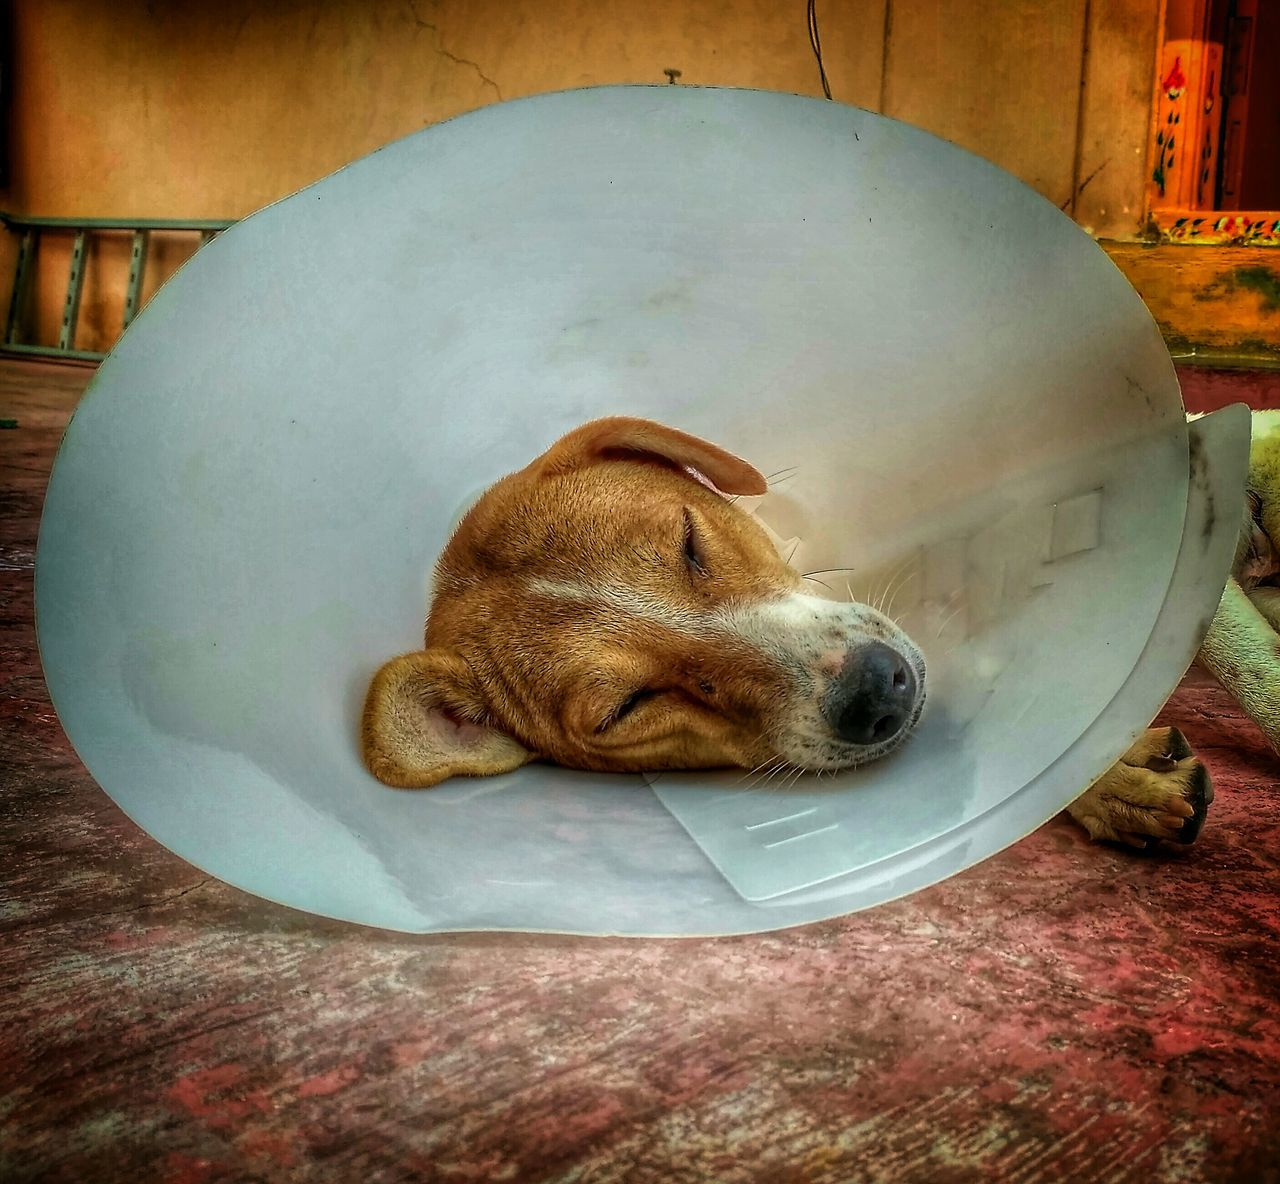 Dog With Protective Collar While Sleeping In Room